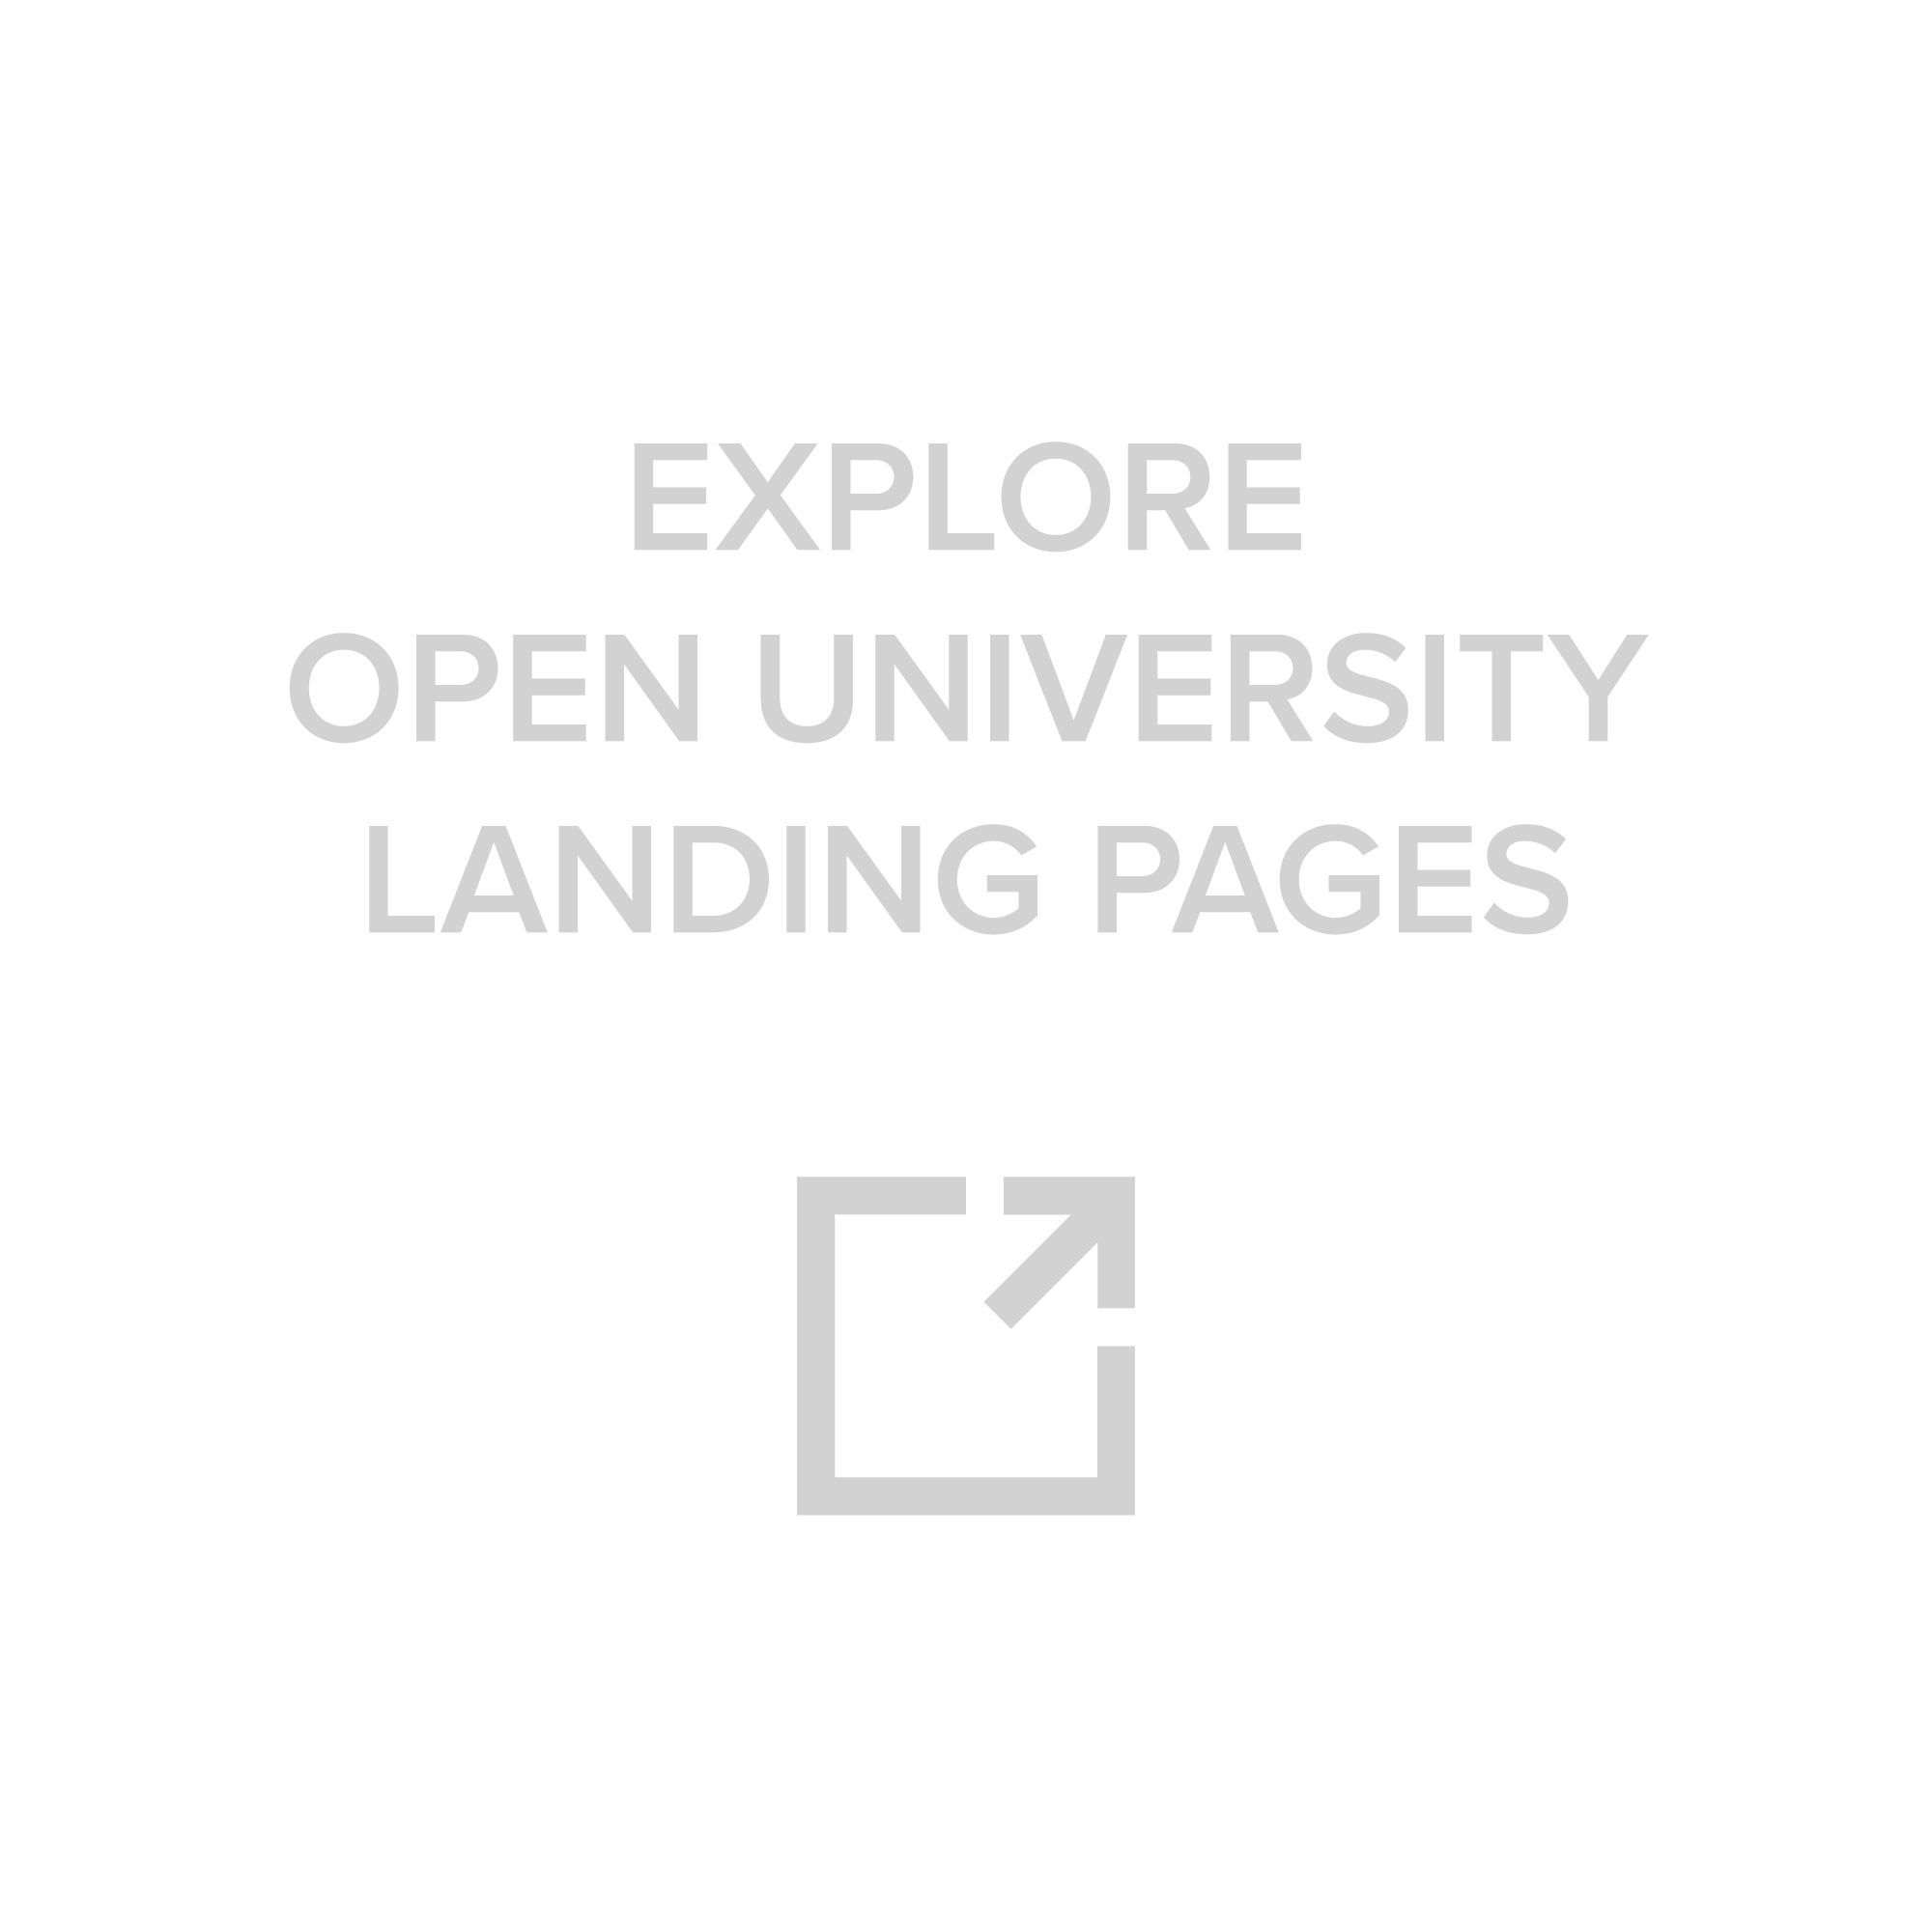 Click to explore more on the landing pages